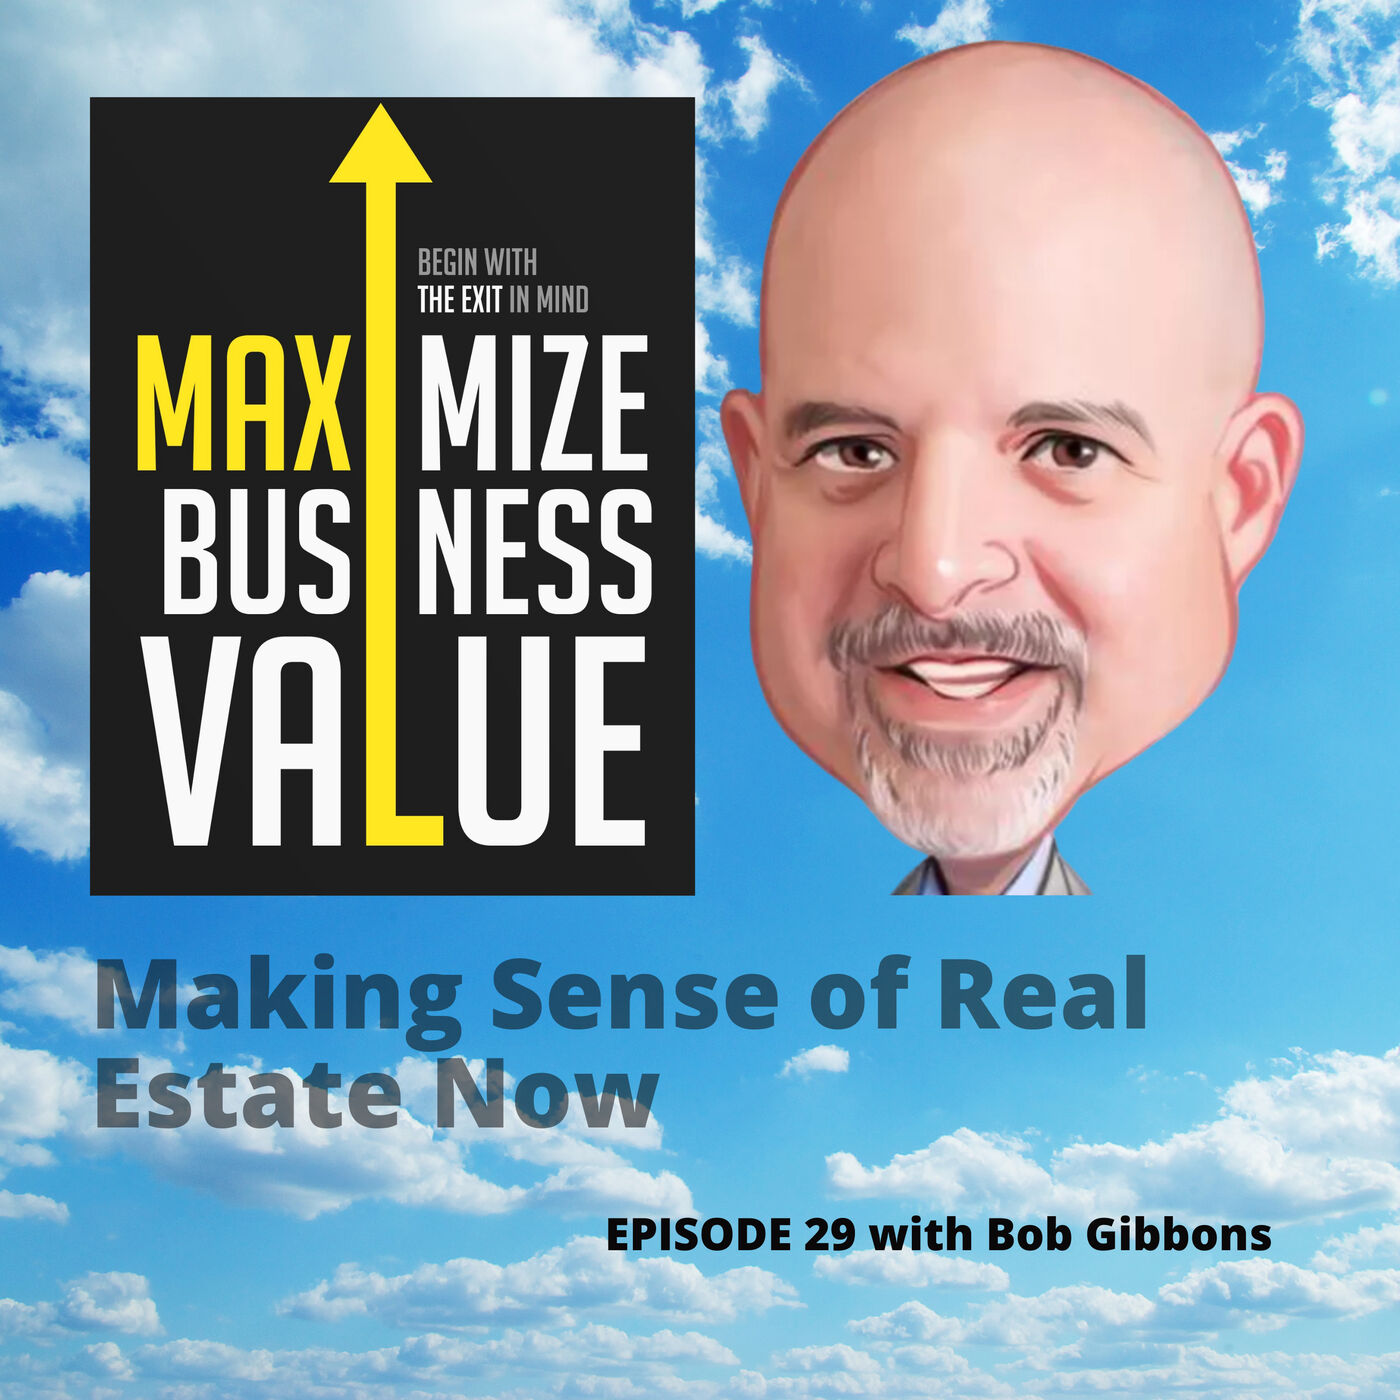 Making Sense of Real Estate Now with Bob Gibbons